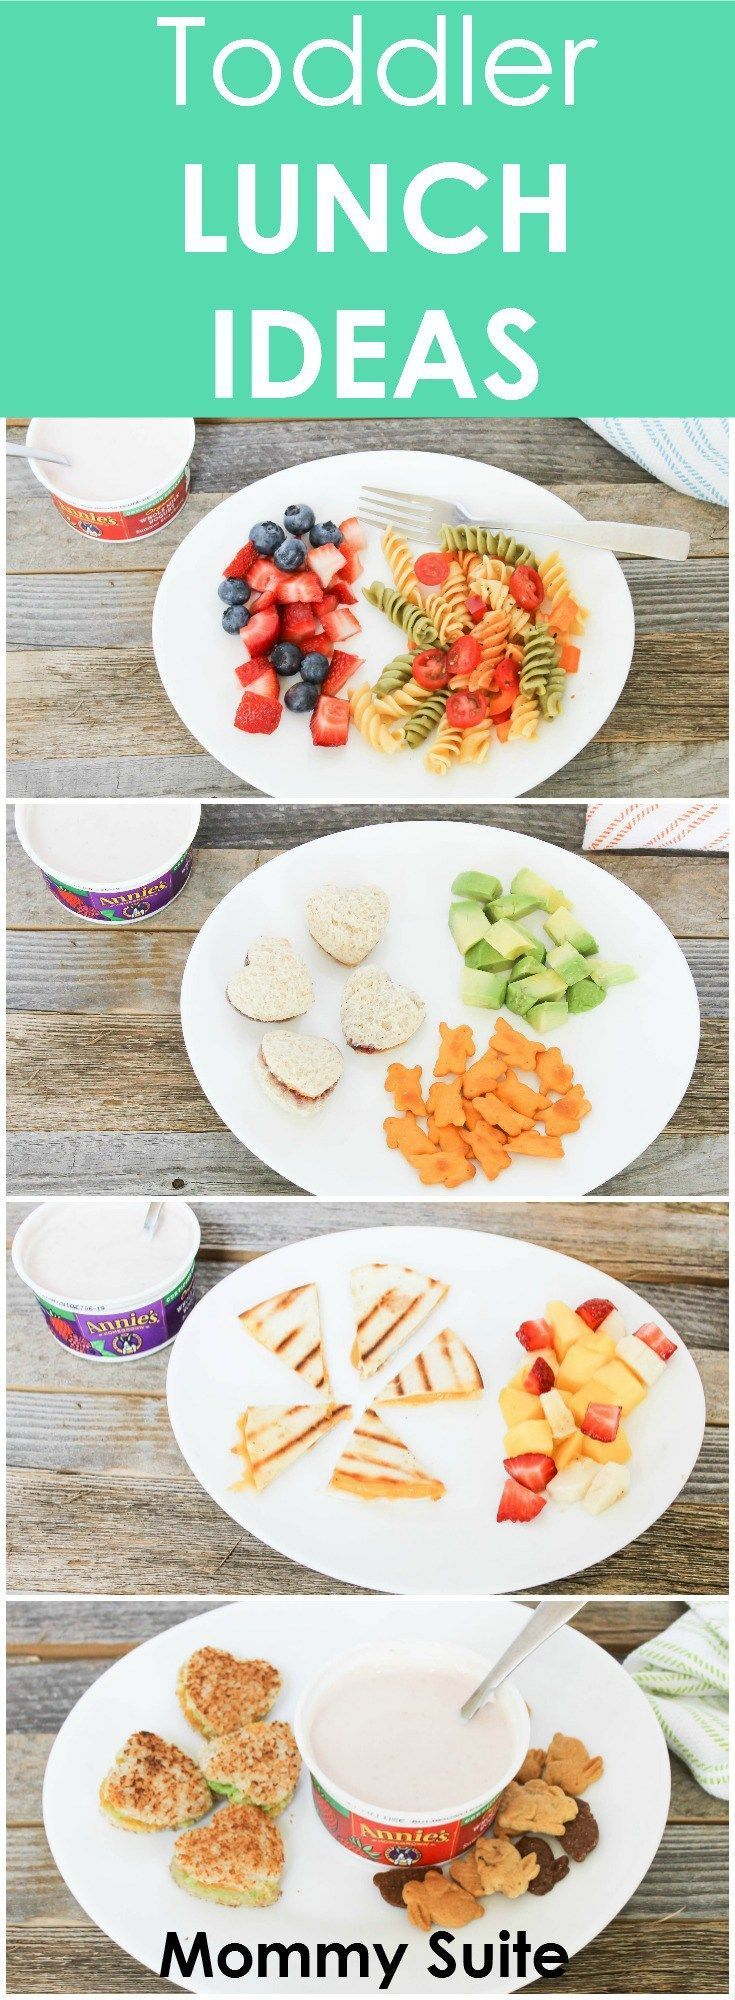 Toddler Lunch Ideas PayPal Giveaway